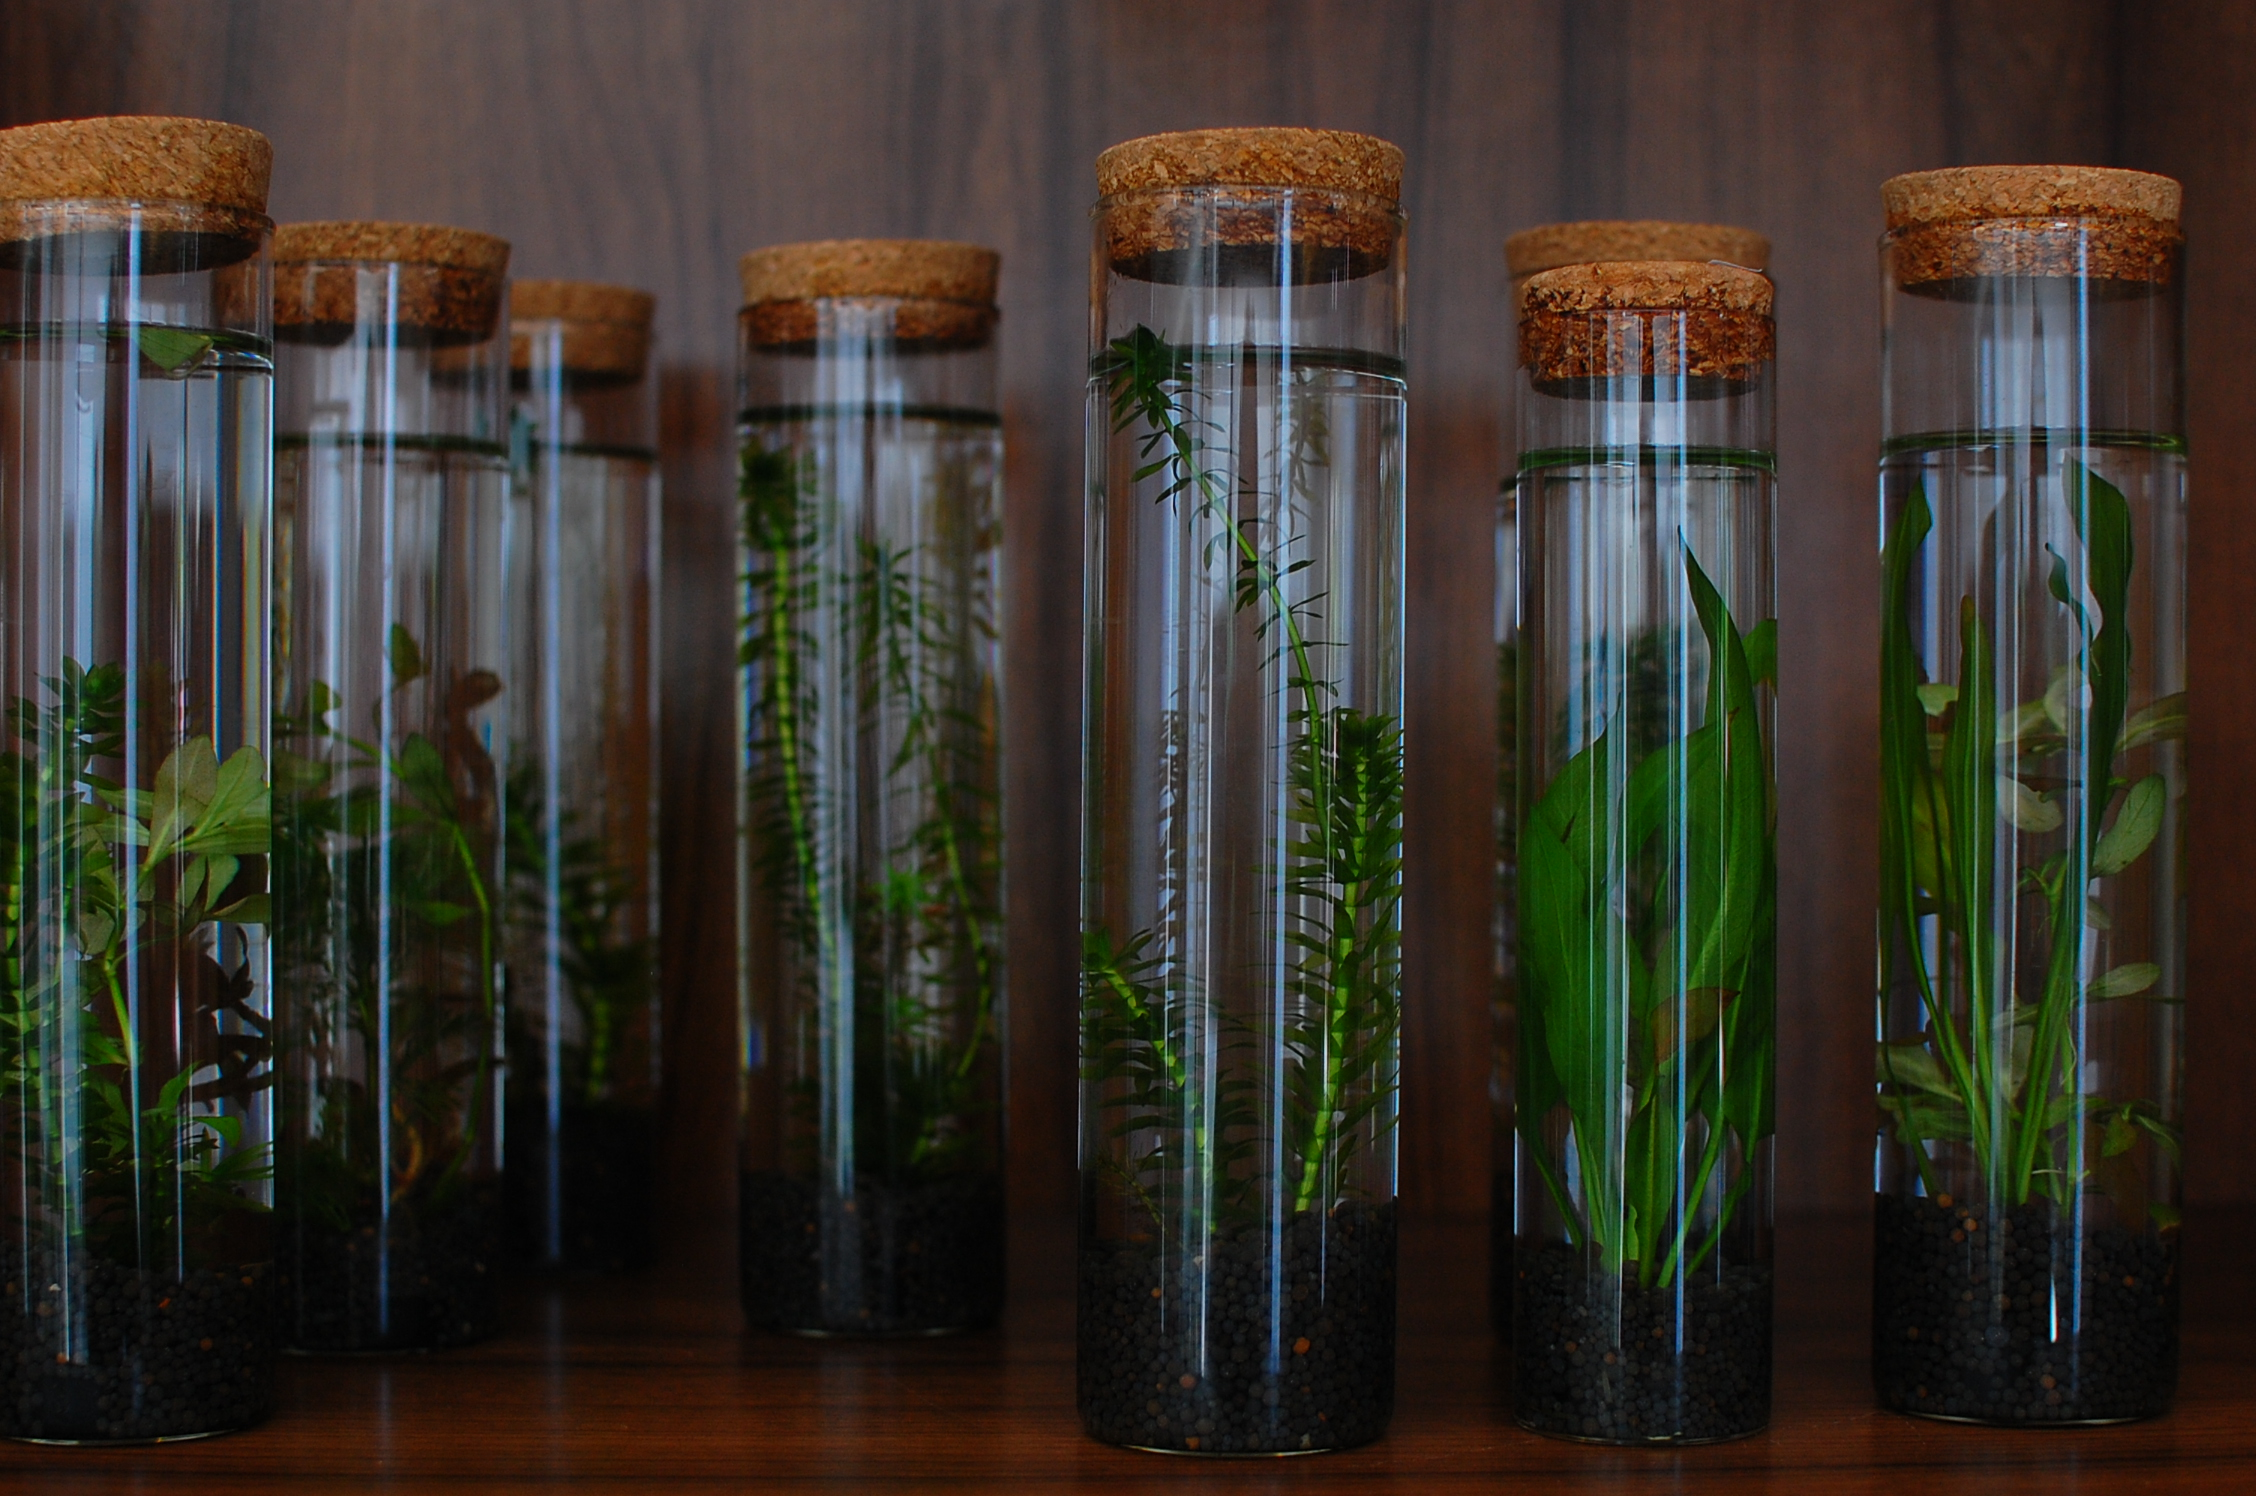 Plants in Tubes, Experiment, Green, Leaves, Plants, HQ Photo